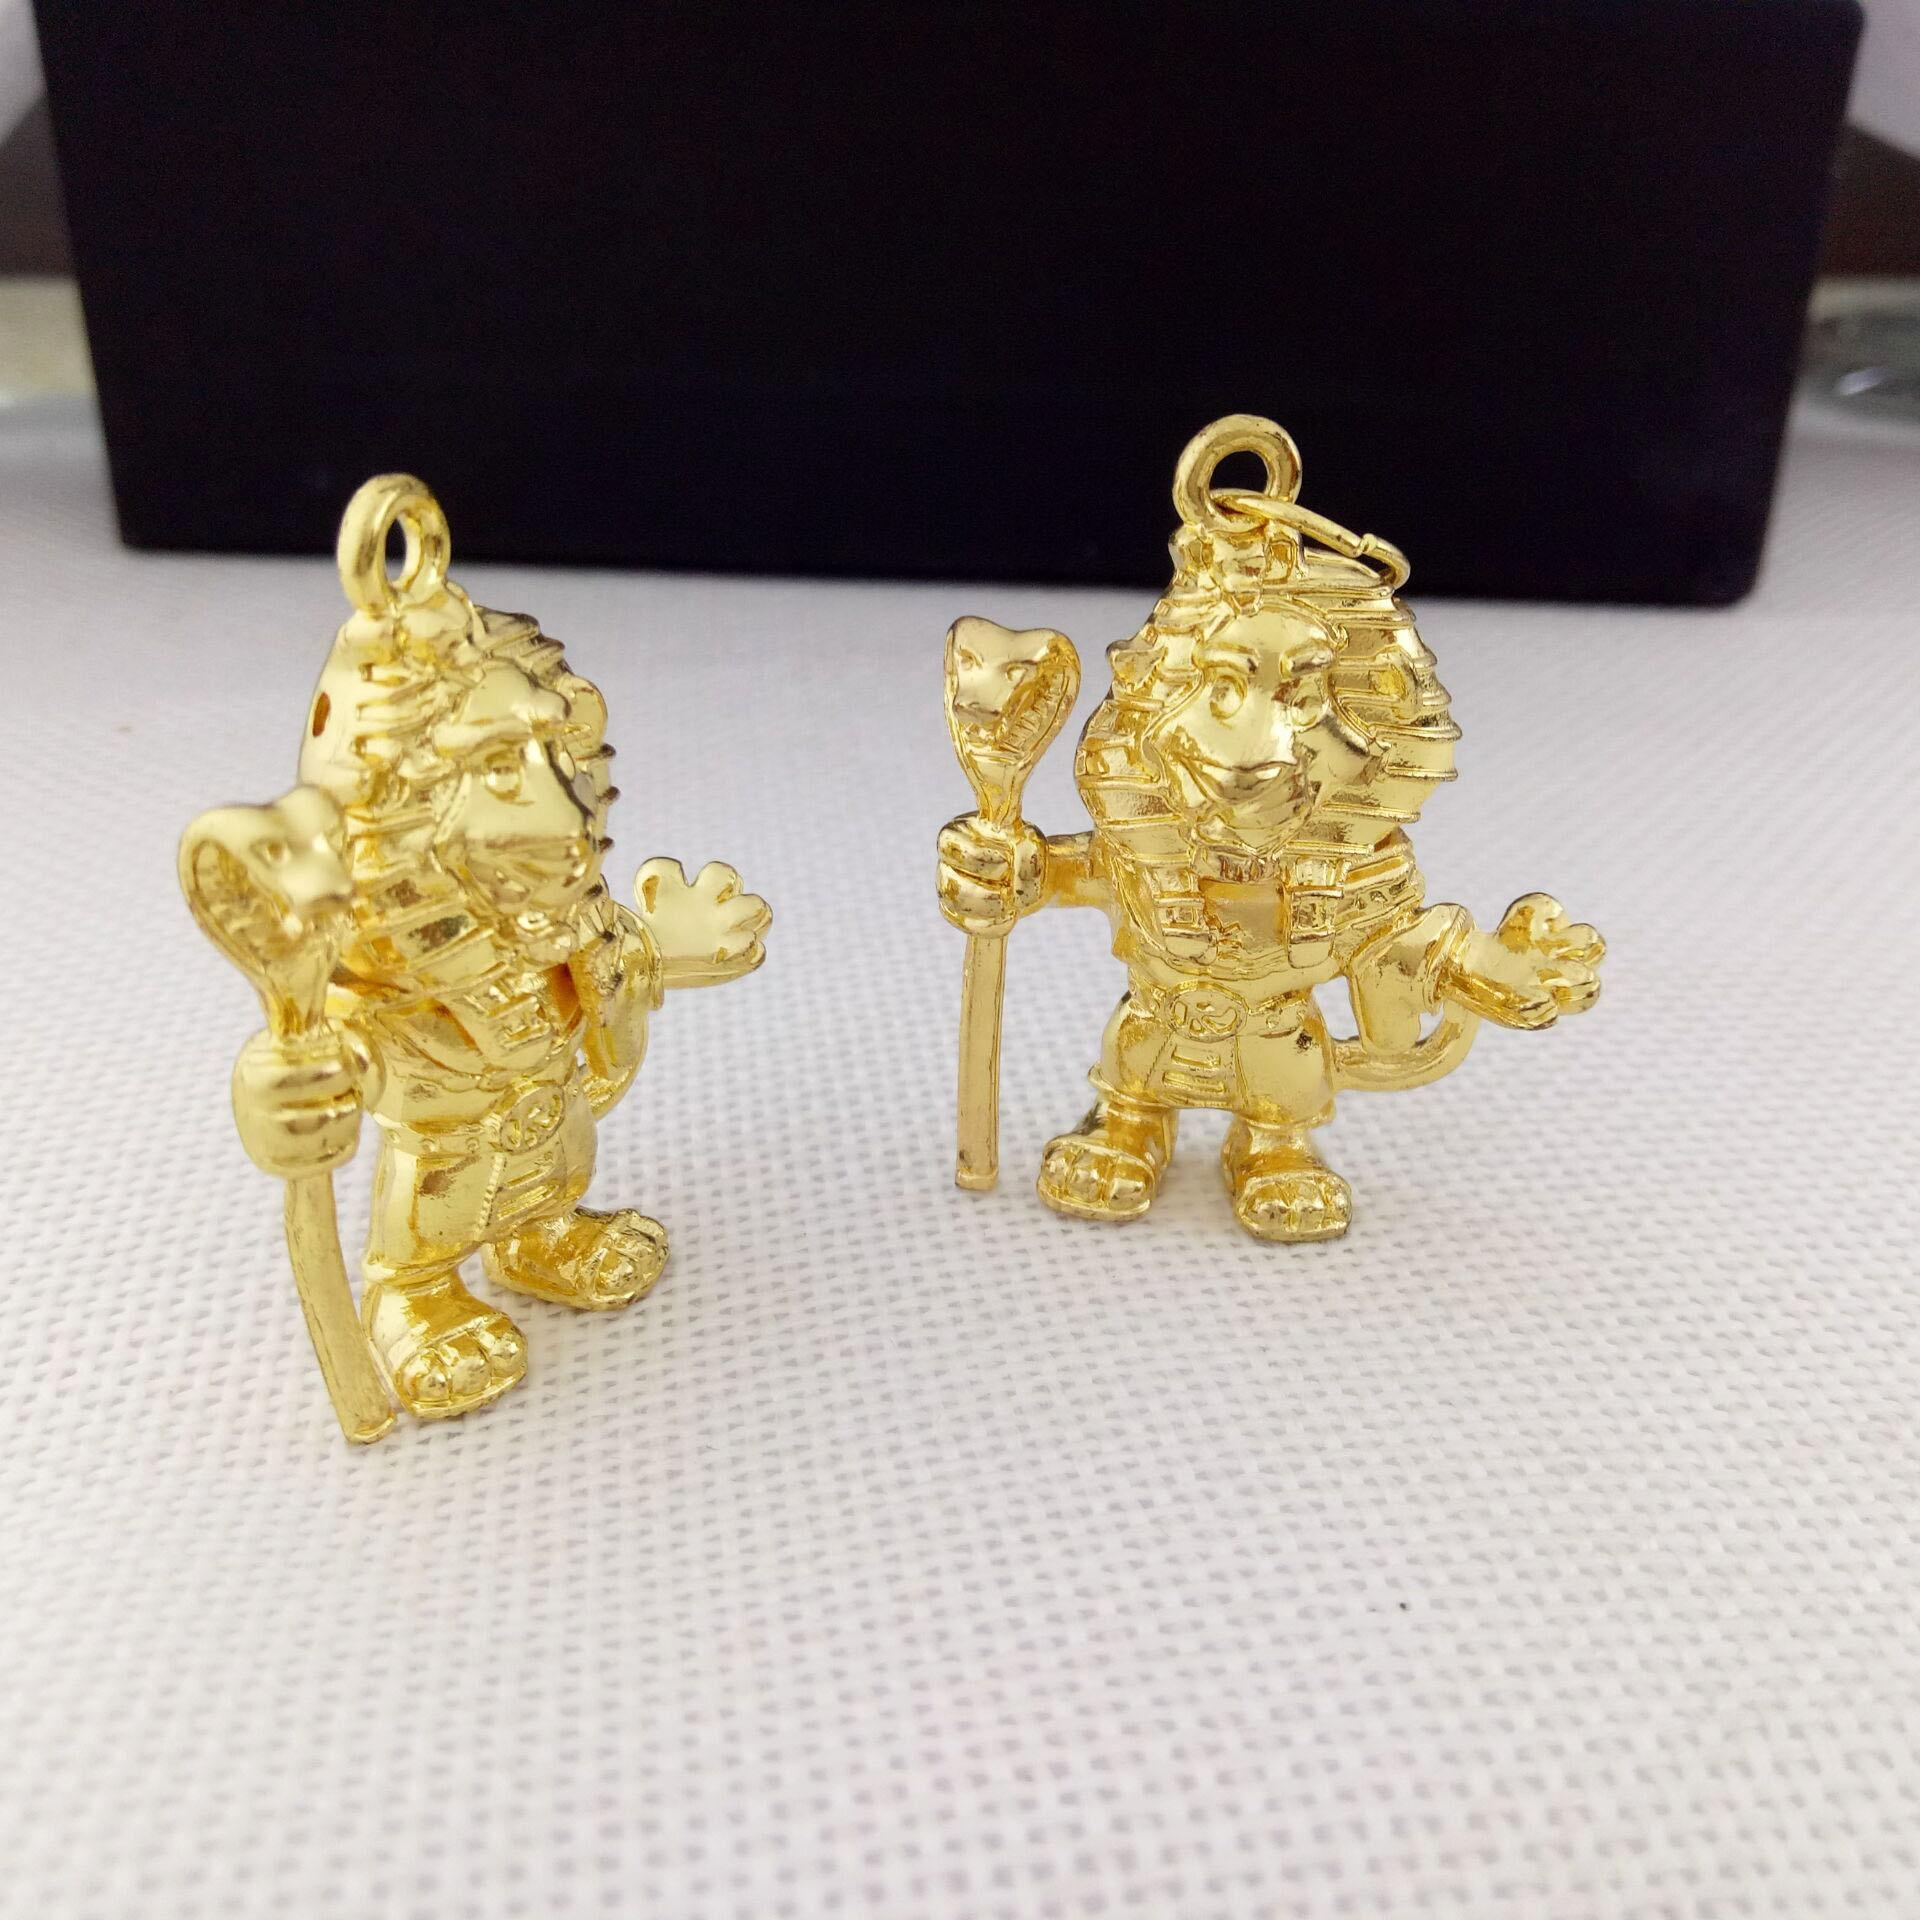 Gold plated custom 3d metal pendants,3d metal charm